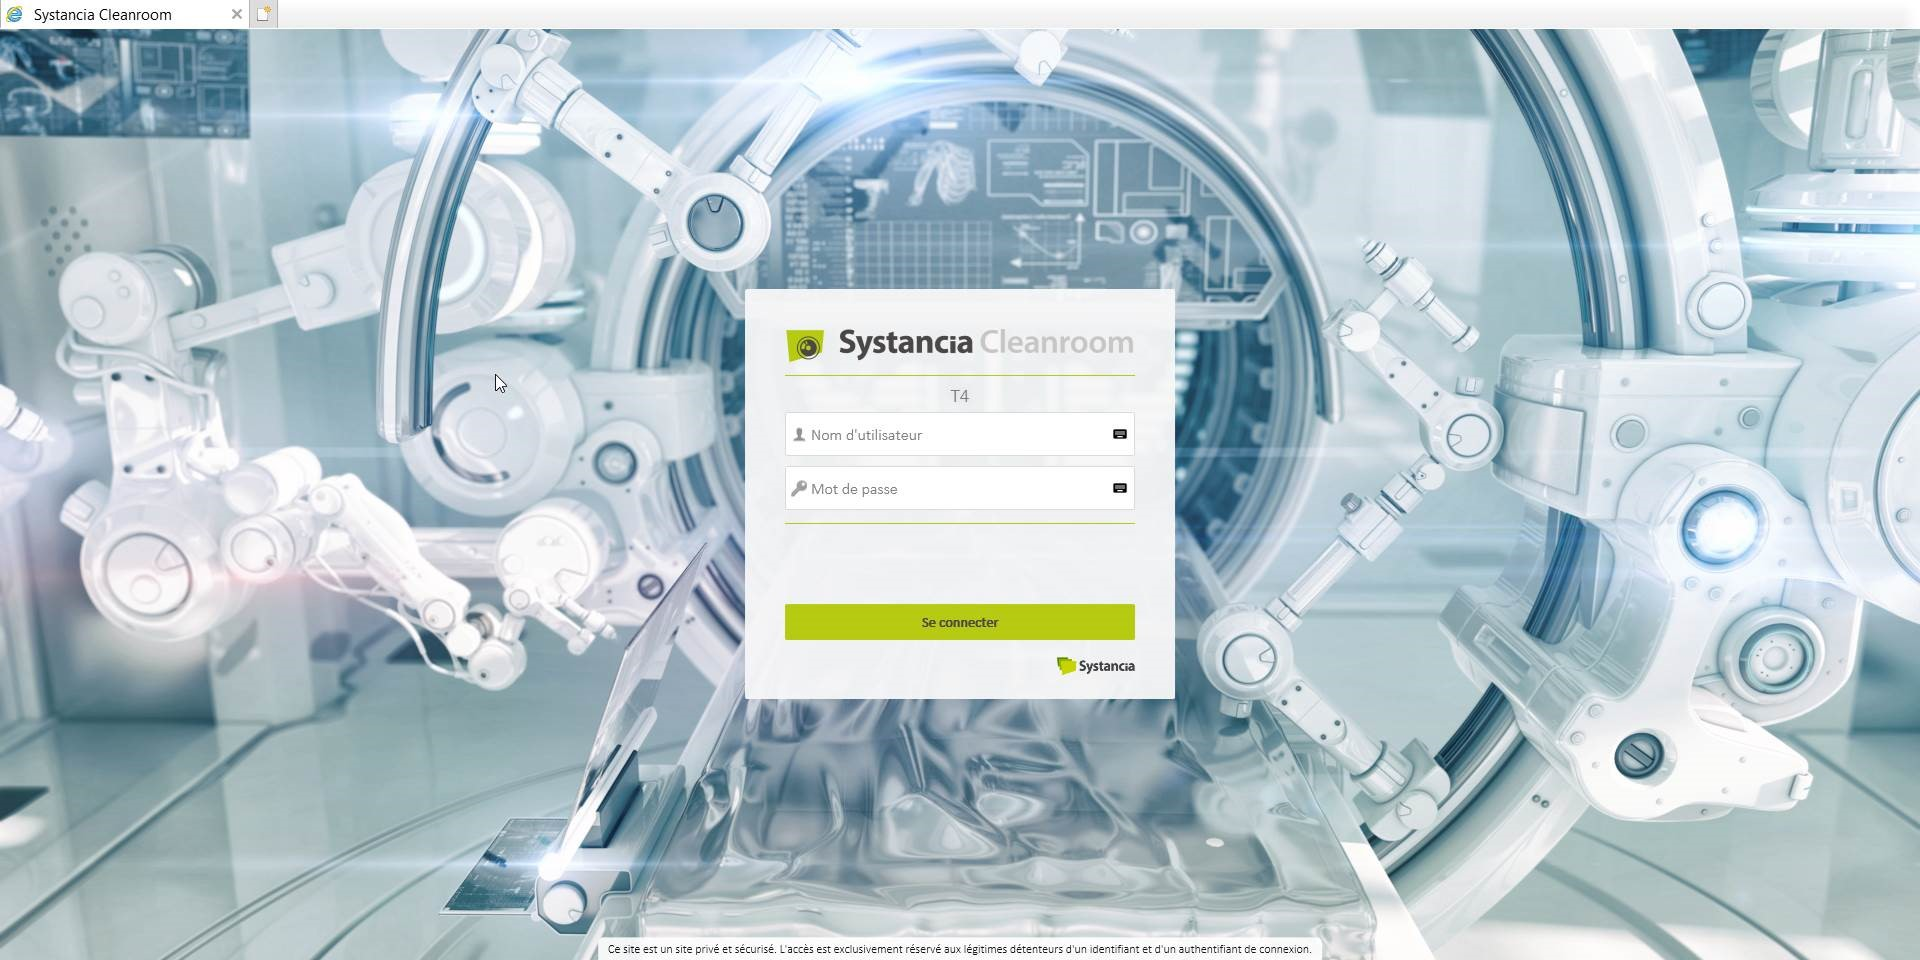 Systancia Cleanroom 4